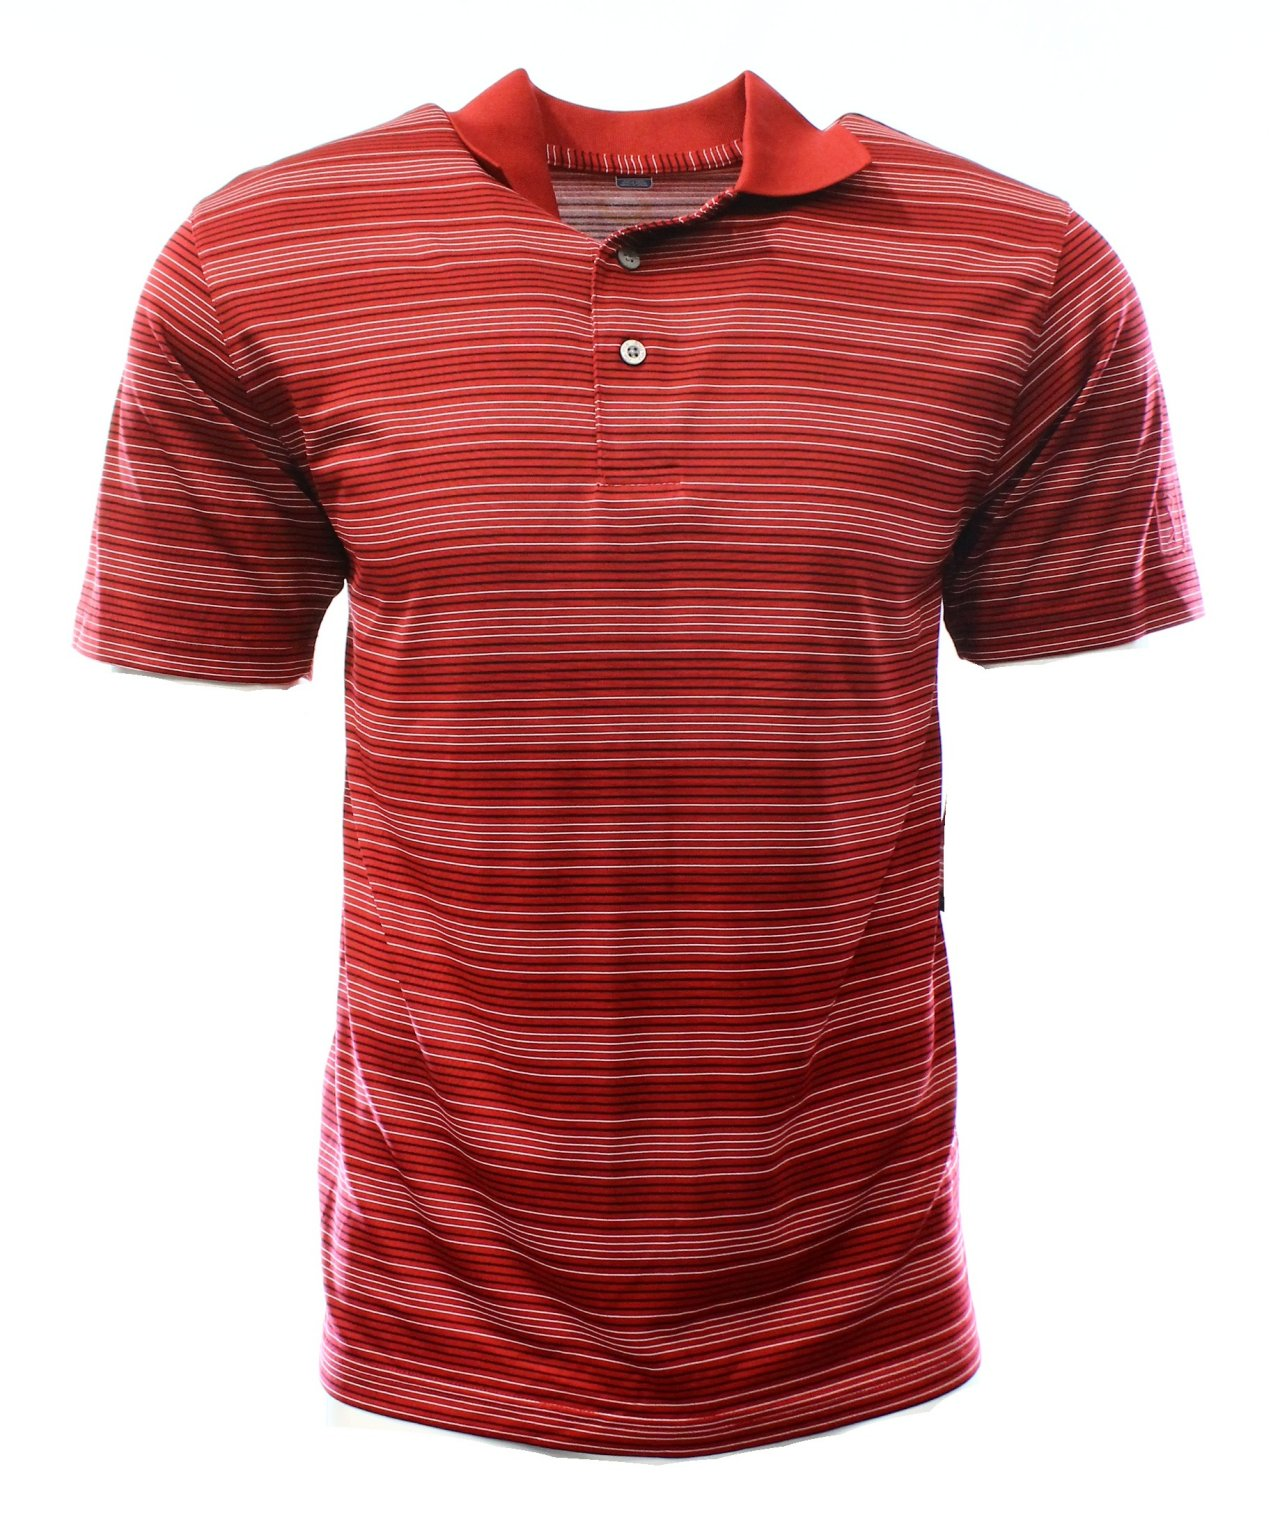 Pga tour new jockey red striped mens size small s golf for Name brand golf shirts